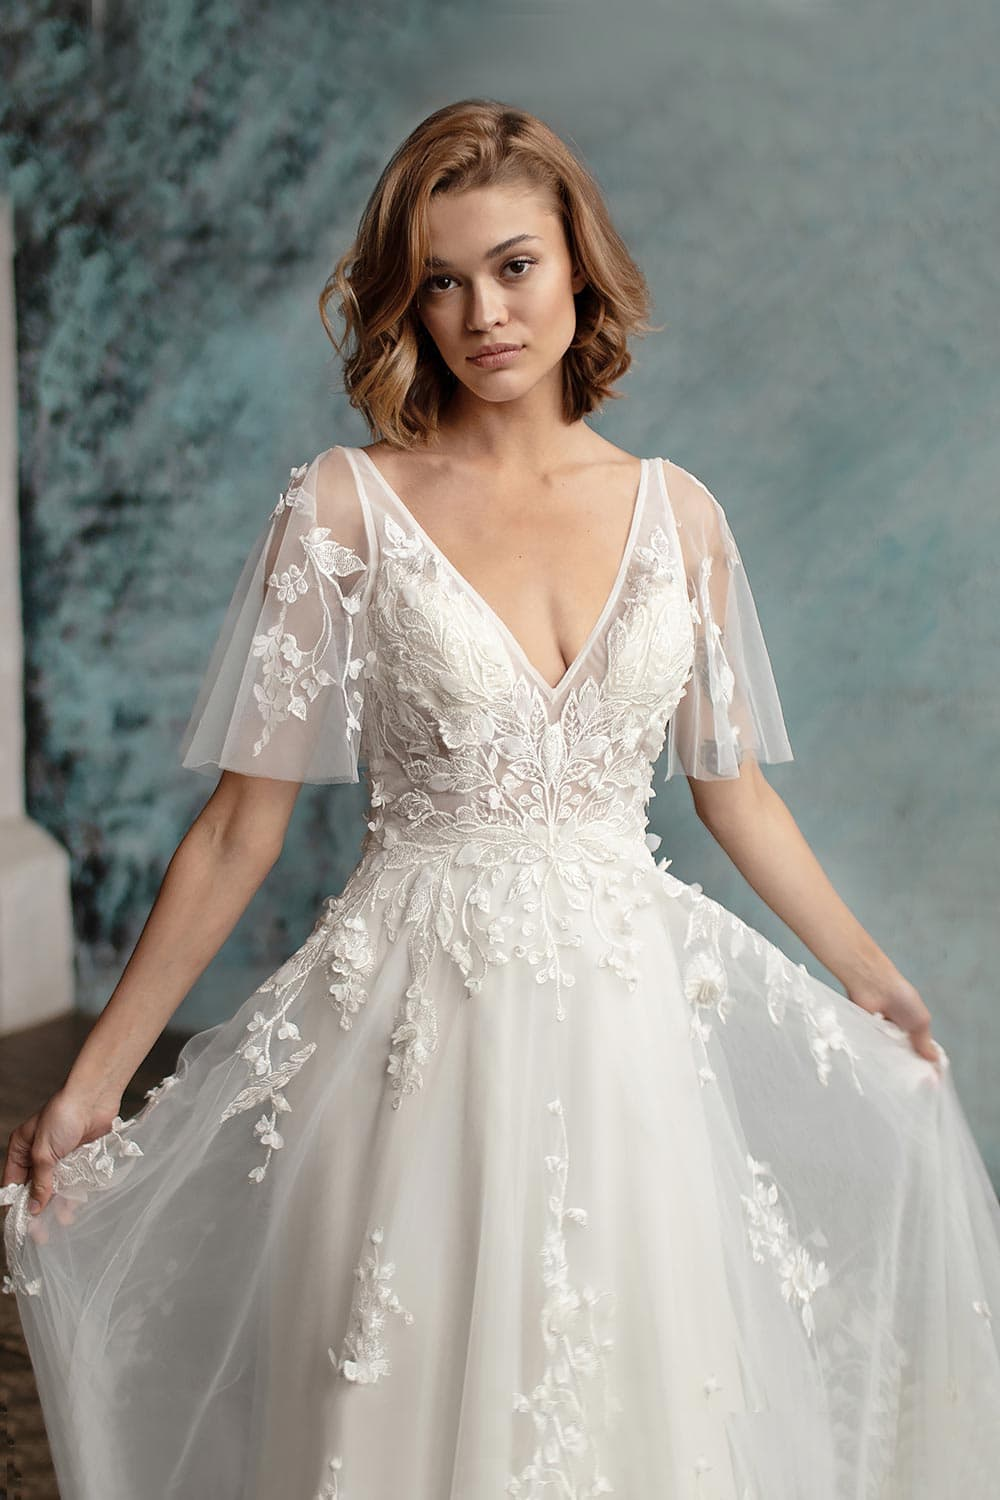 bridal shop near me wedding dress shop near me wedding dress near me wedding dress with sleeves 9